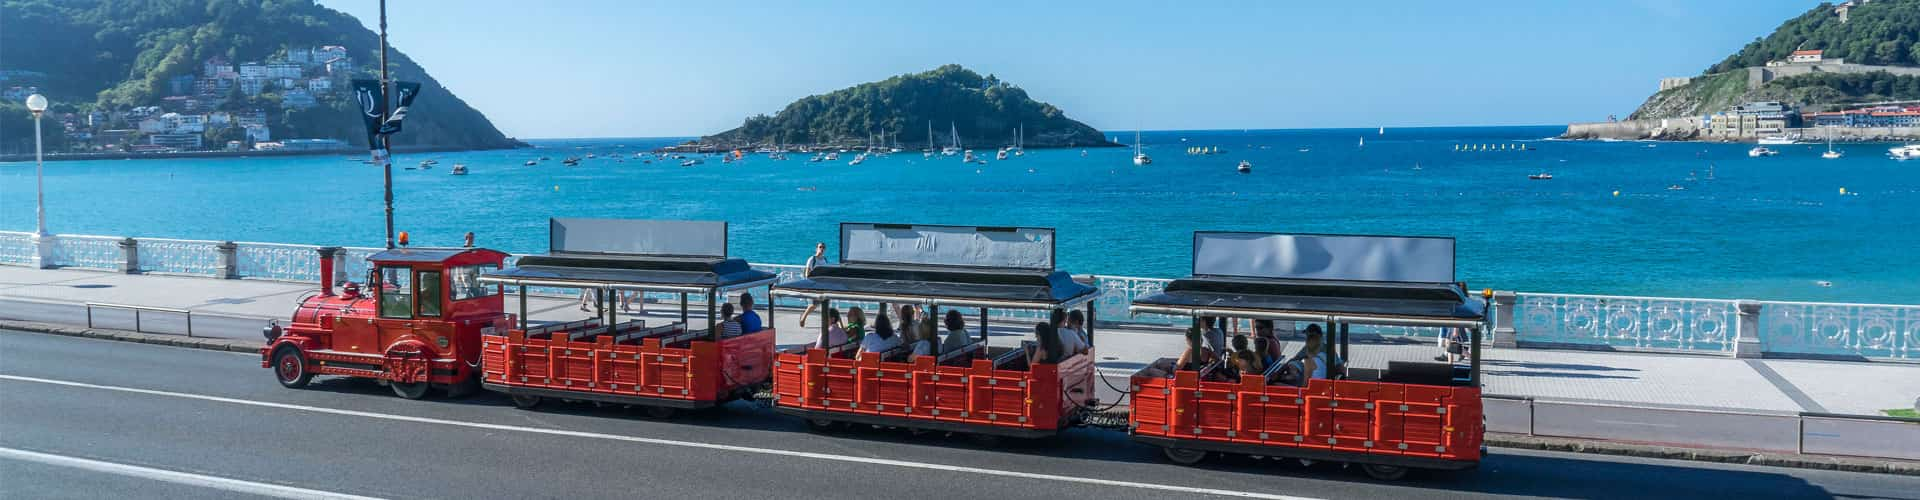 San Sebastián City Tour Tren